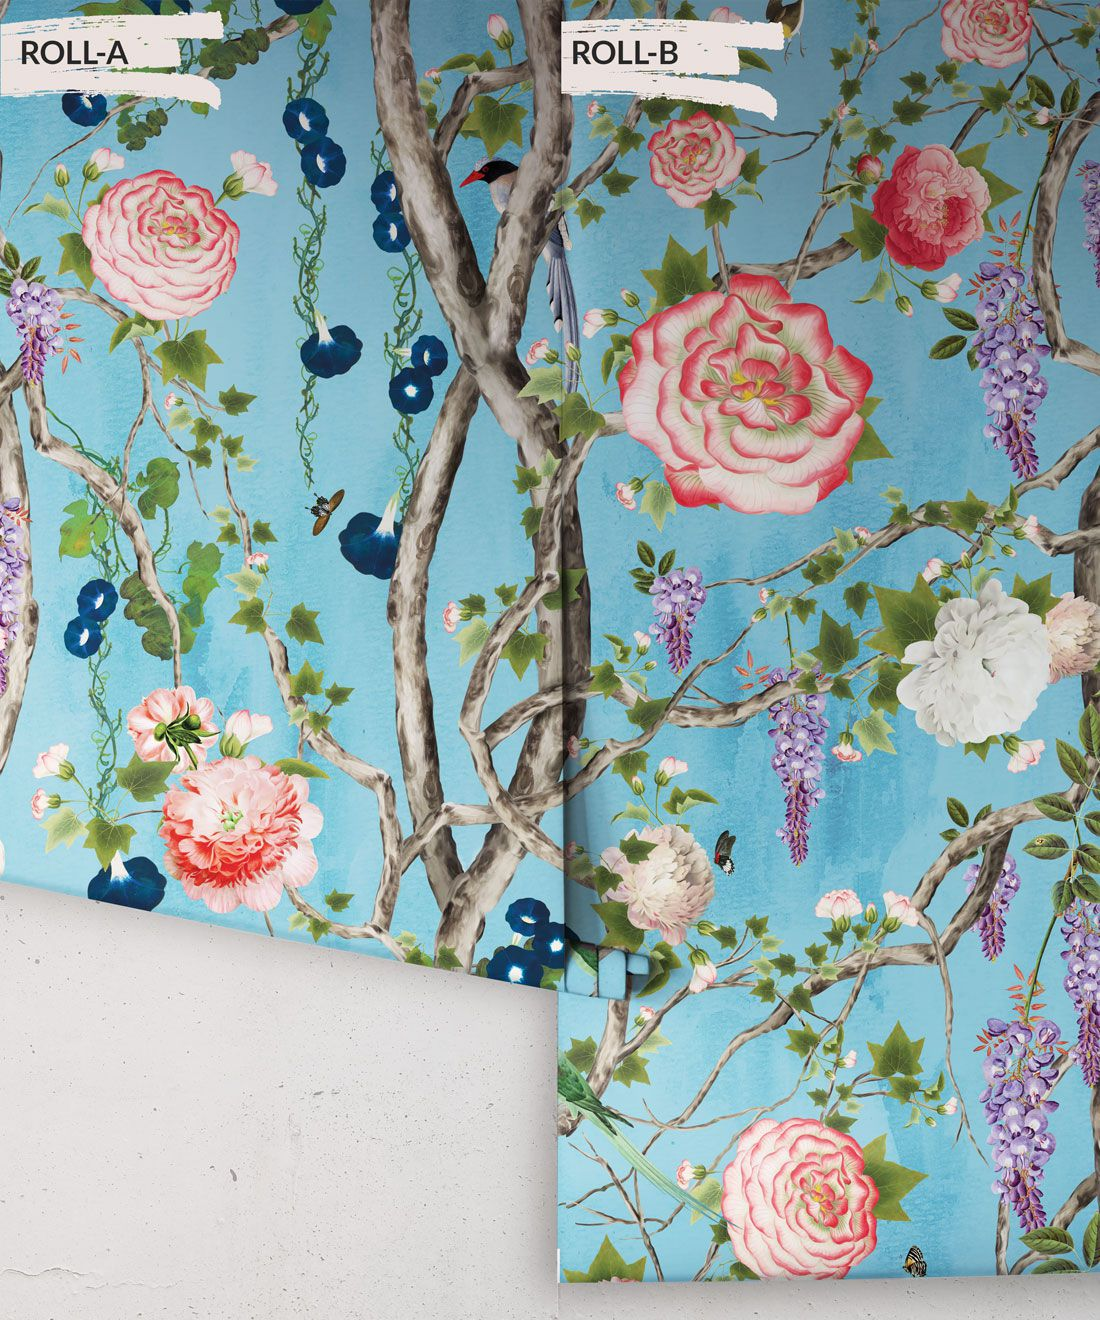 Empress Wallpaper • Romantic Wallpaper • Floral Wallpaper • Chinoiserie Wallpaper • Light Blue color wallpaper rolls• Sky